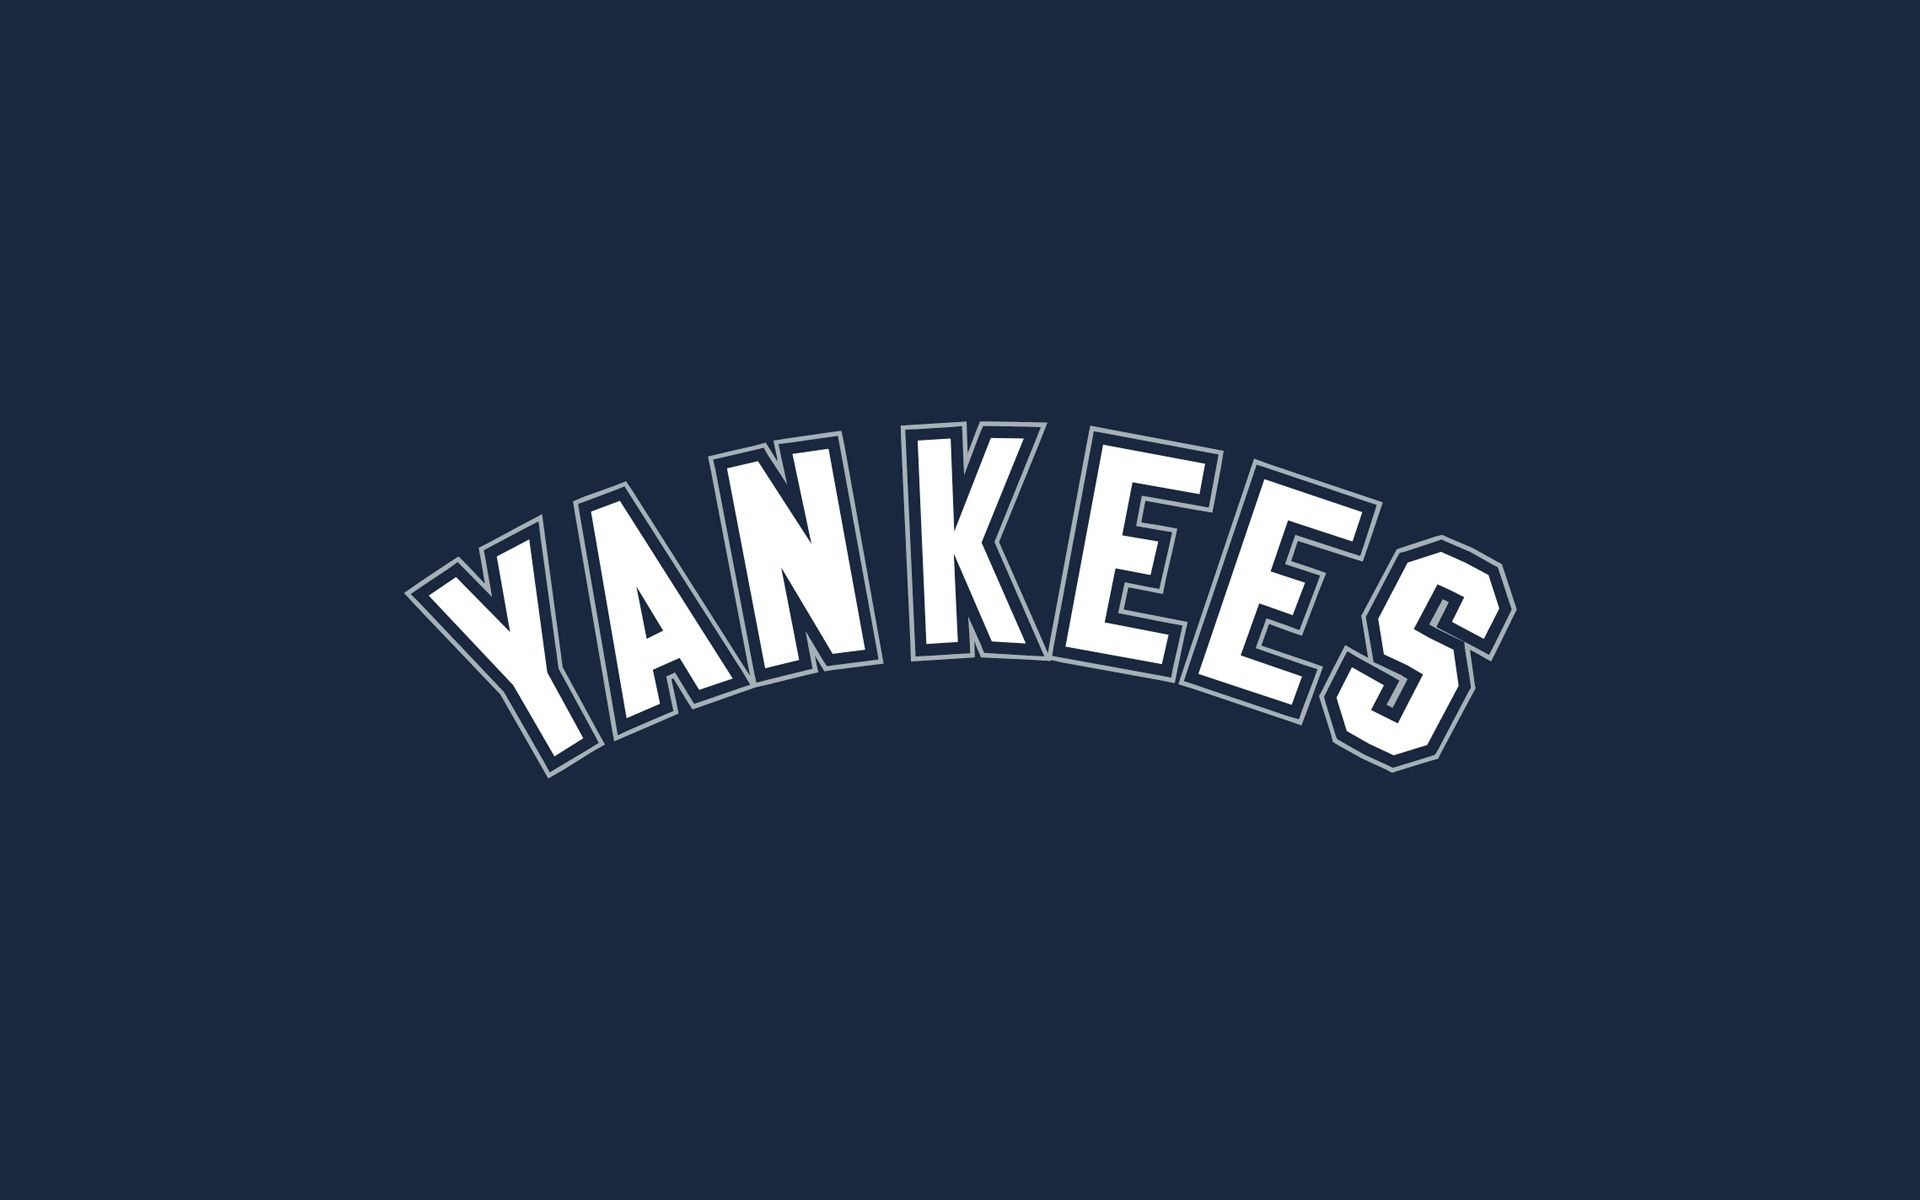 Wallpapers New York Yankees Mlb Logo Navy Wide Baseball 1920x1200 Fondos De Deportes Yankees De Nueva York Beisbol